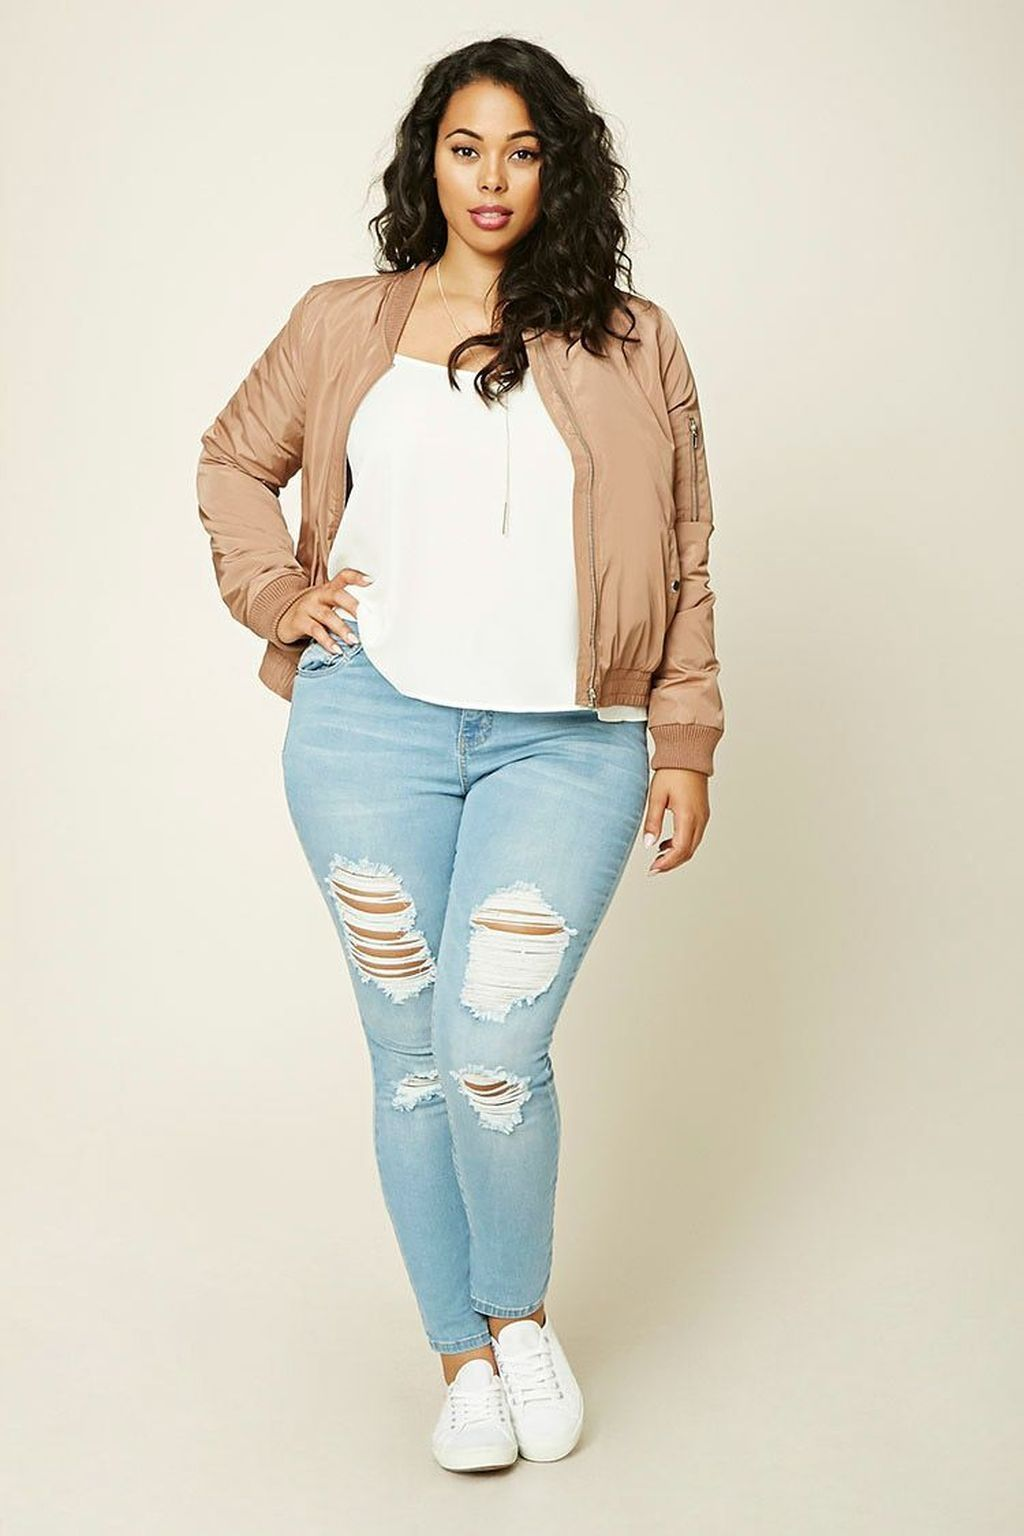 716903aae8d 20+ Totally Inspiring Plus Size Fall Outfits Ideas